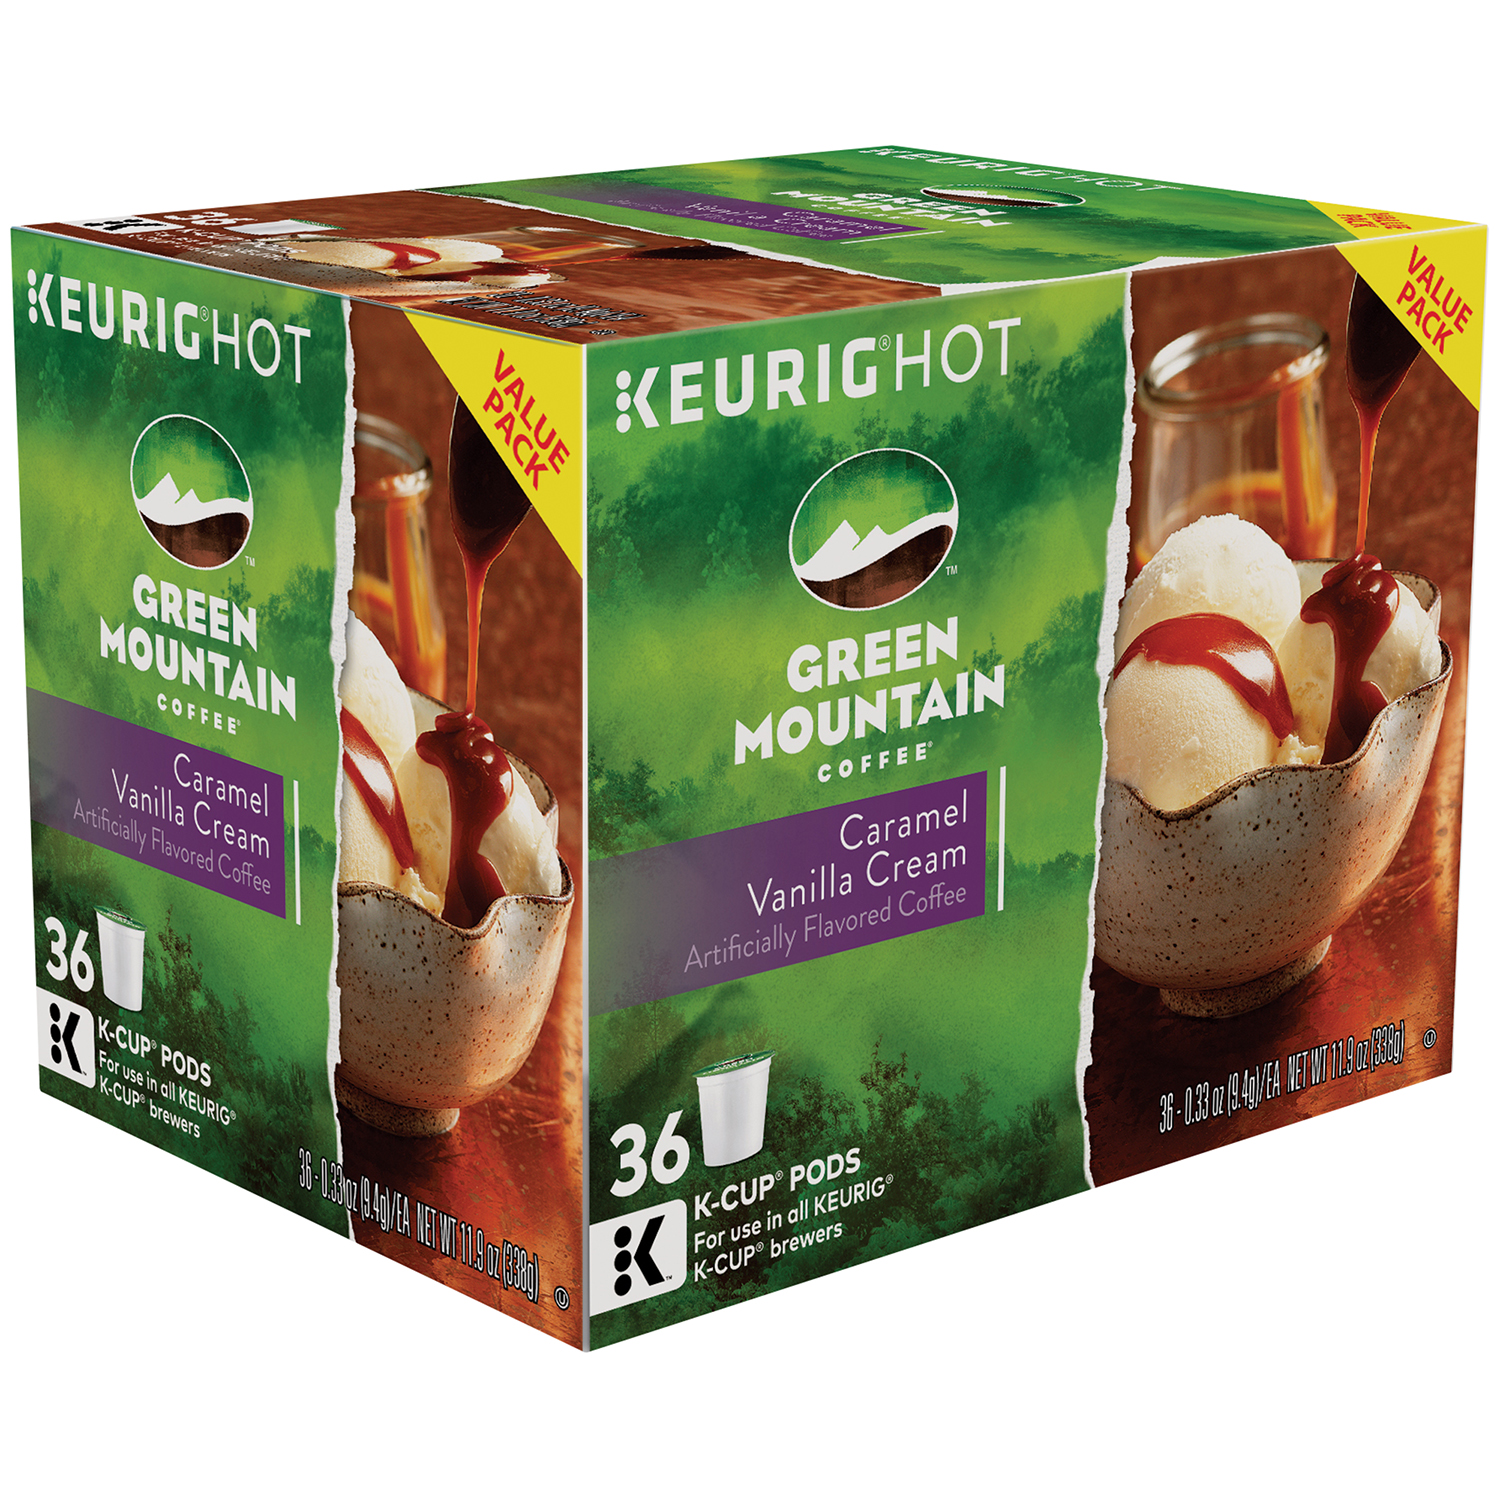 Keurig Hot Green Mountain Caramel Vanilla Cream Coffee K-Cup Pods, 0.33 oz, 36 count